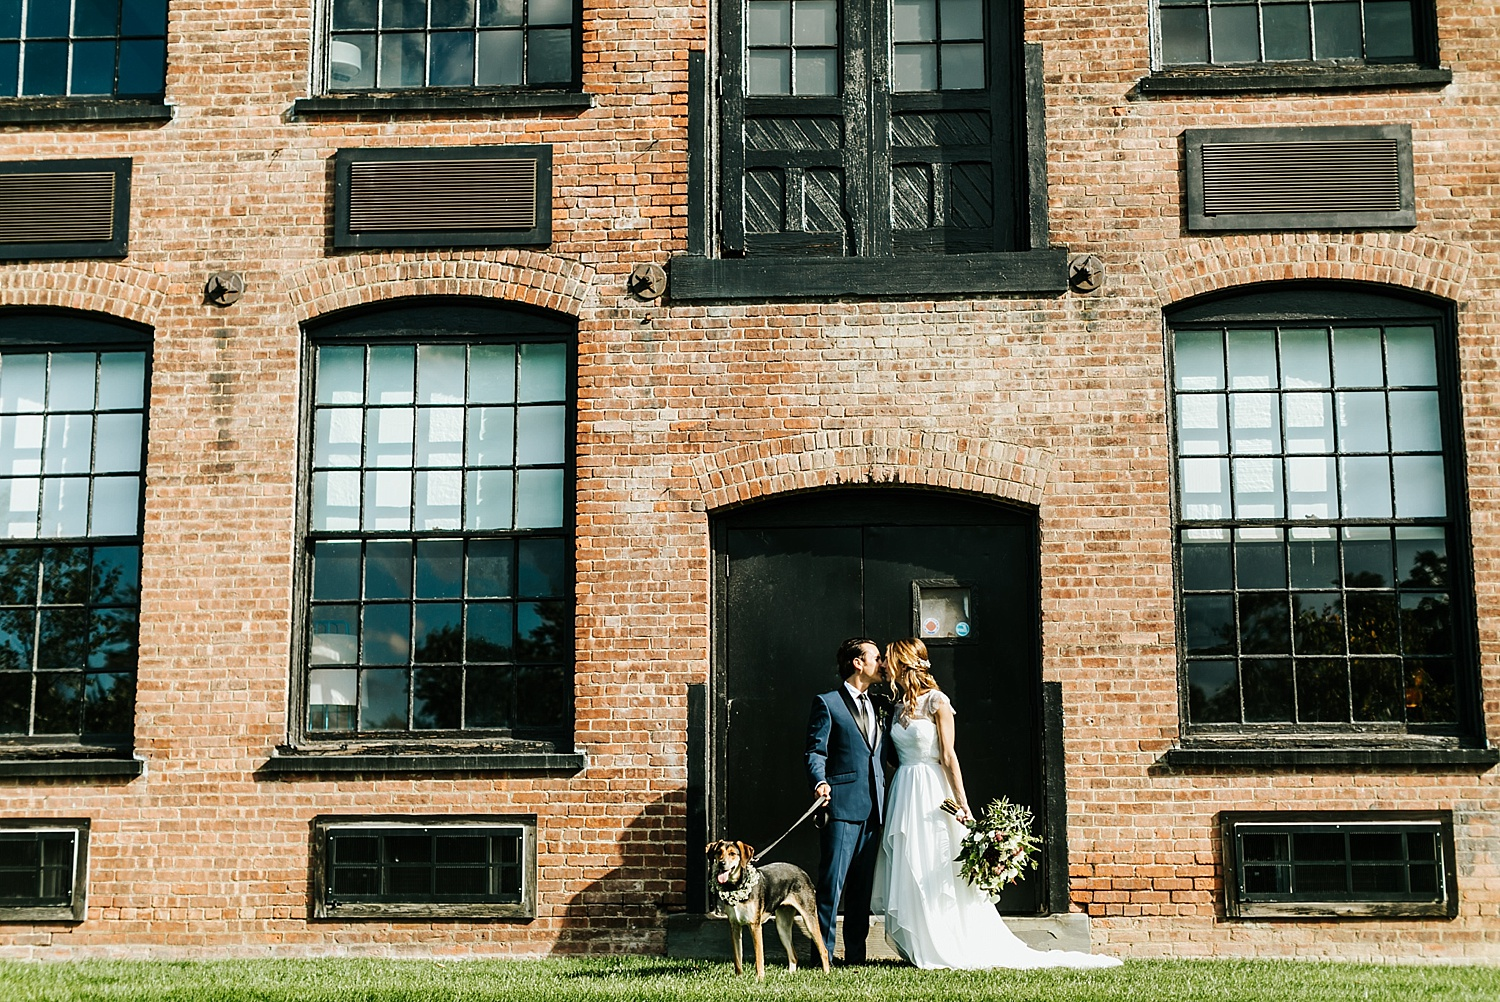 Summer wedding at the roundhouse